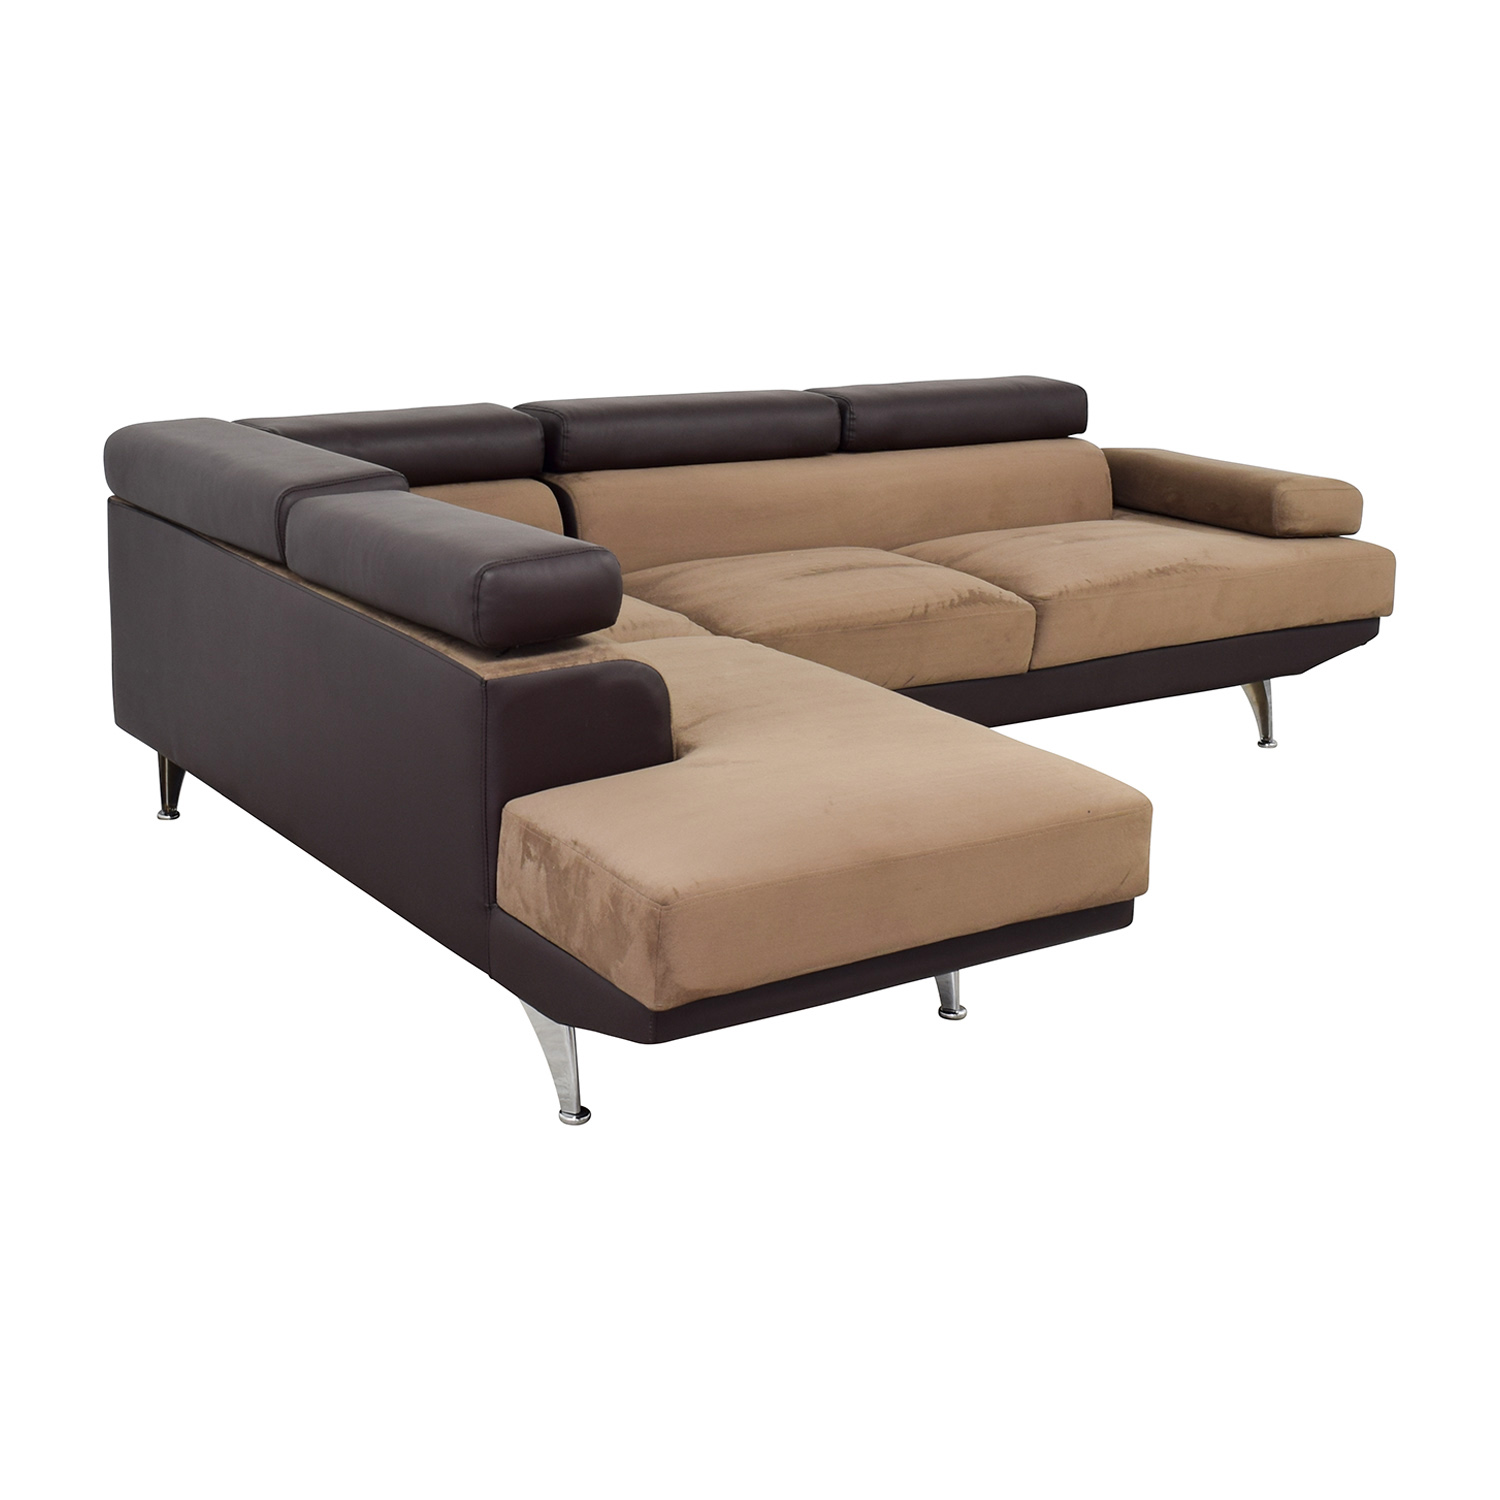 65 off wayfair wayfair berardi brown leather and tan fabric l shaped sectional sofas. Black Bedroom Furniture Sets. Home Design Ideas